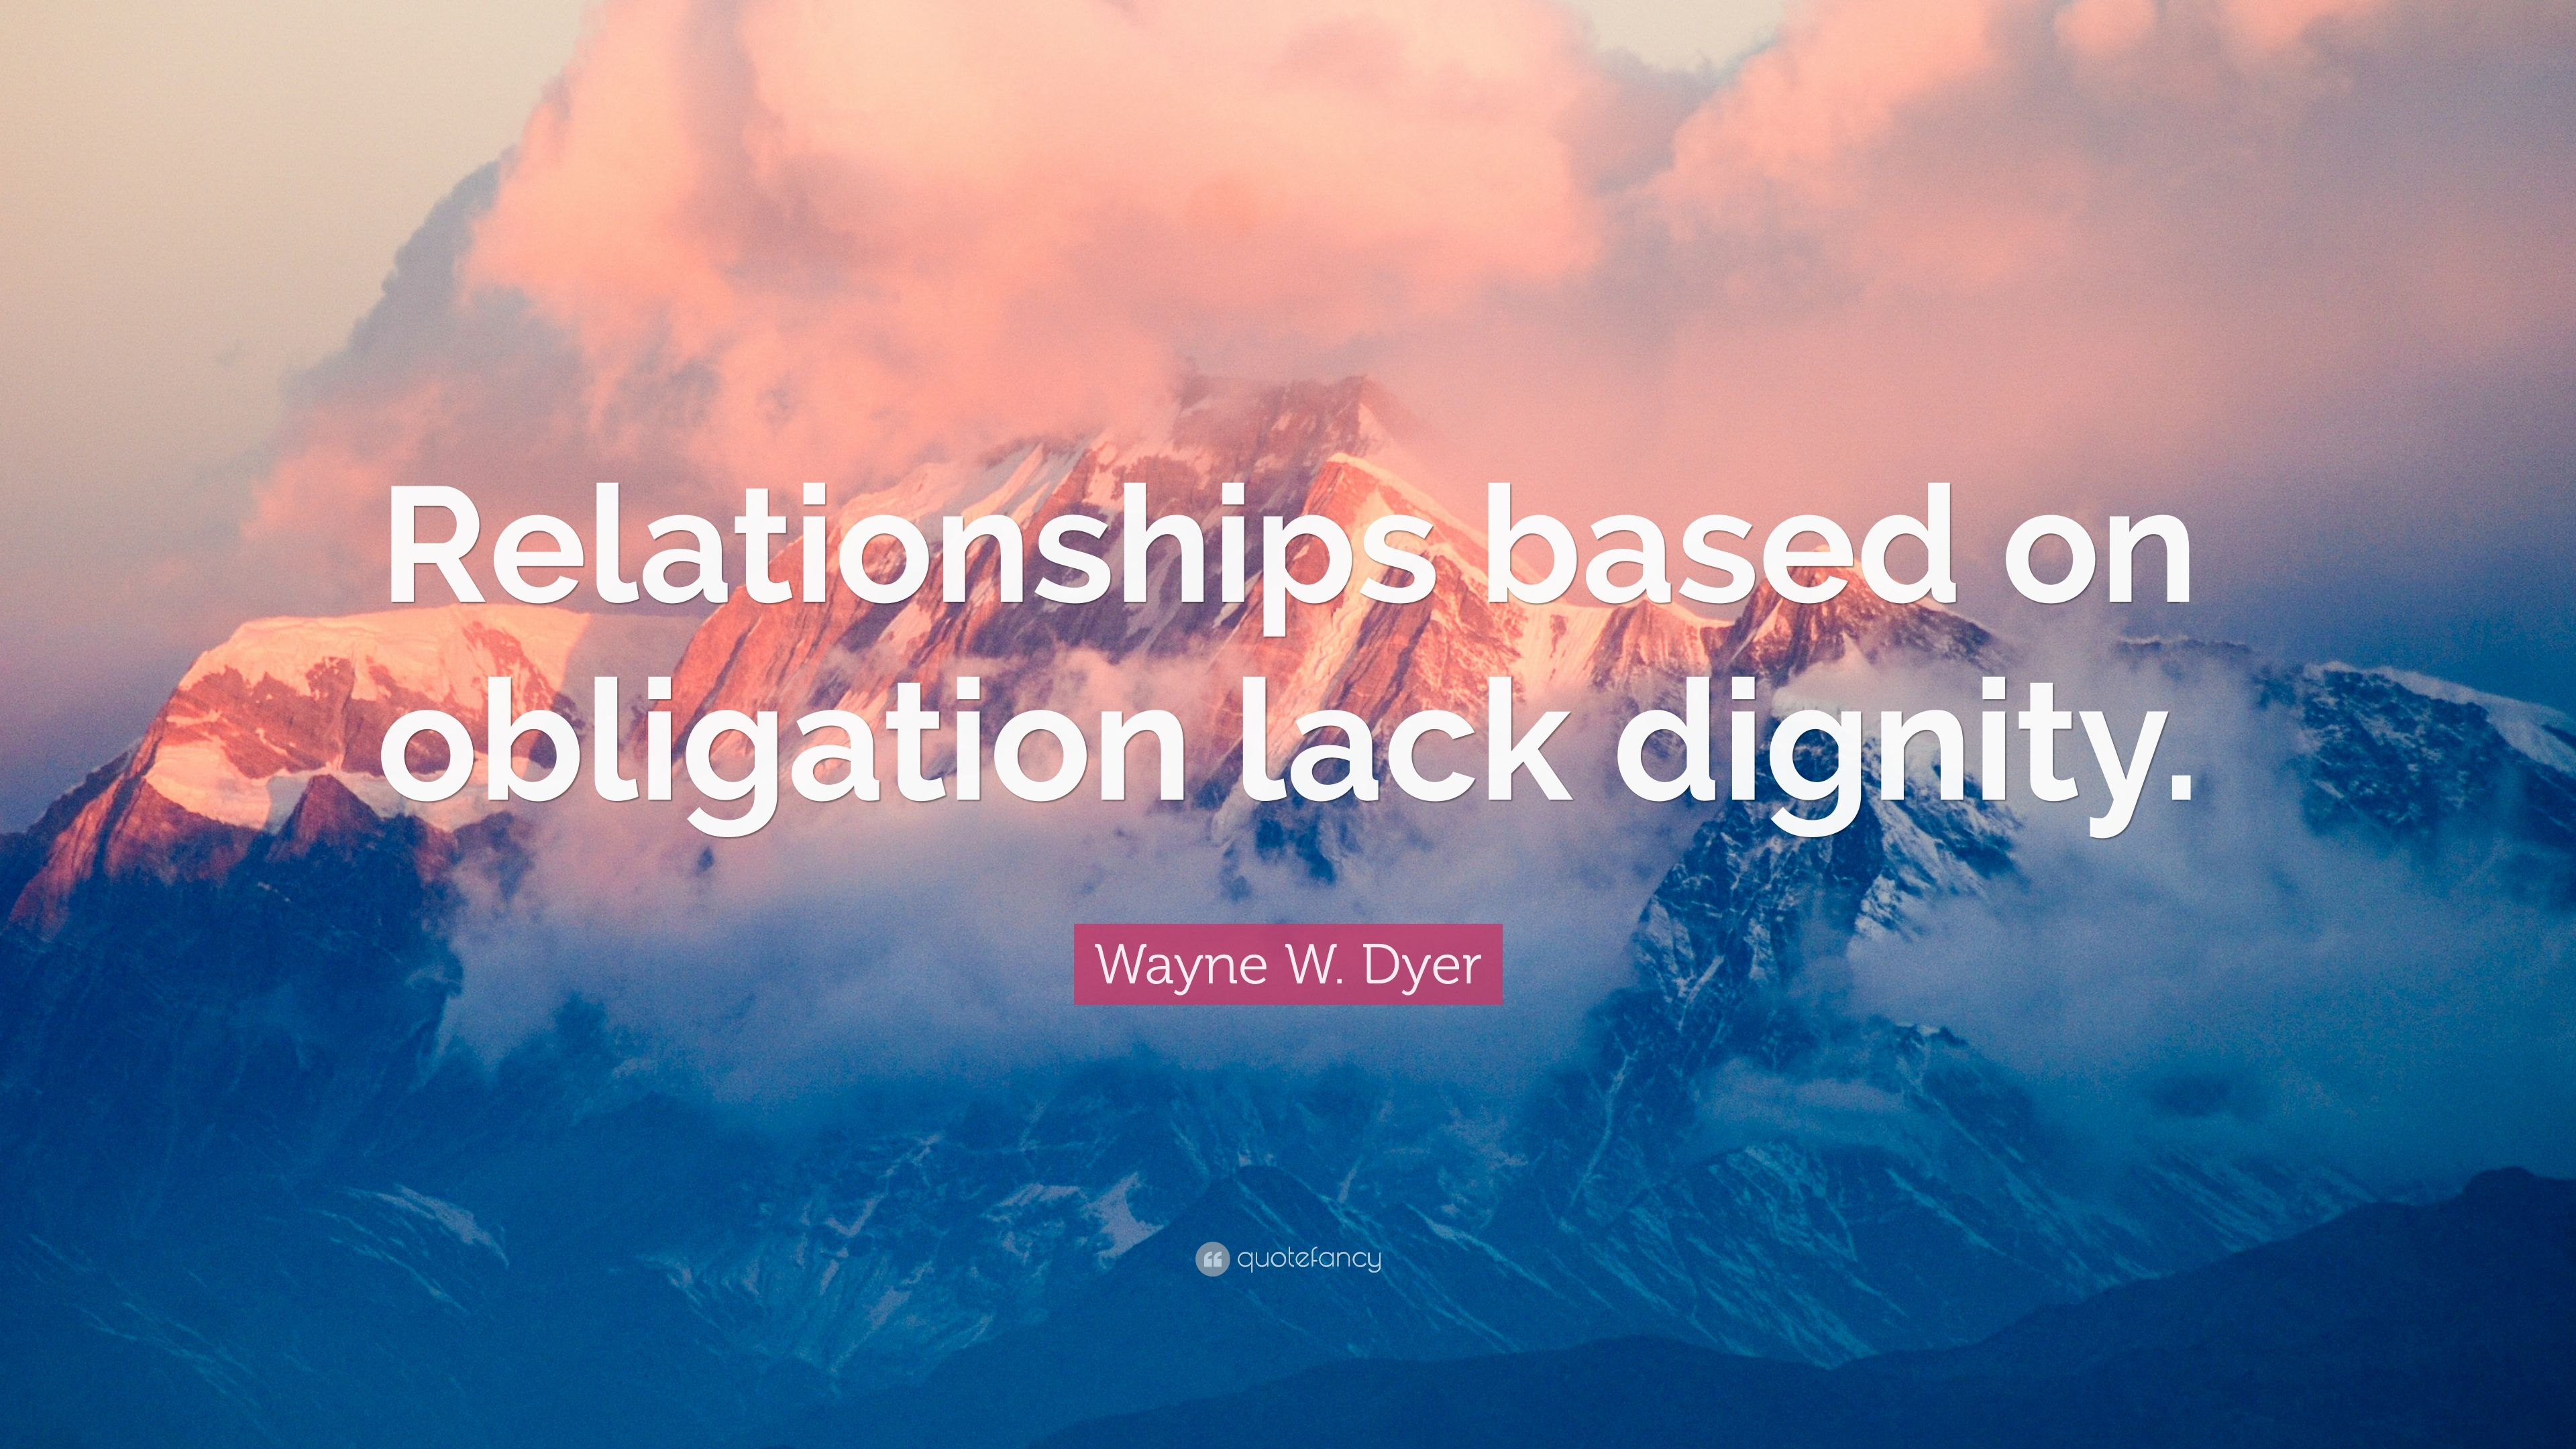 Wayne w dyer quote relationships based on obligation lack dignity